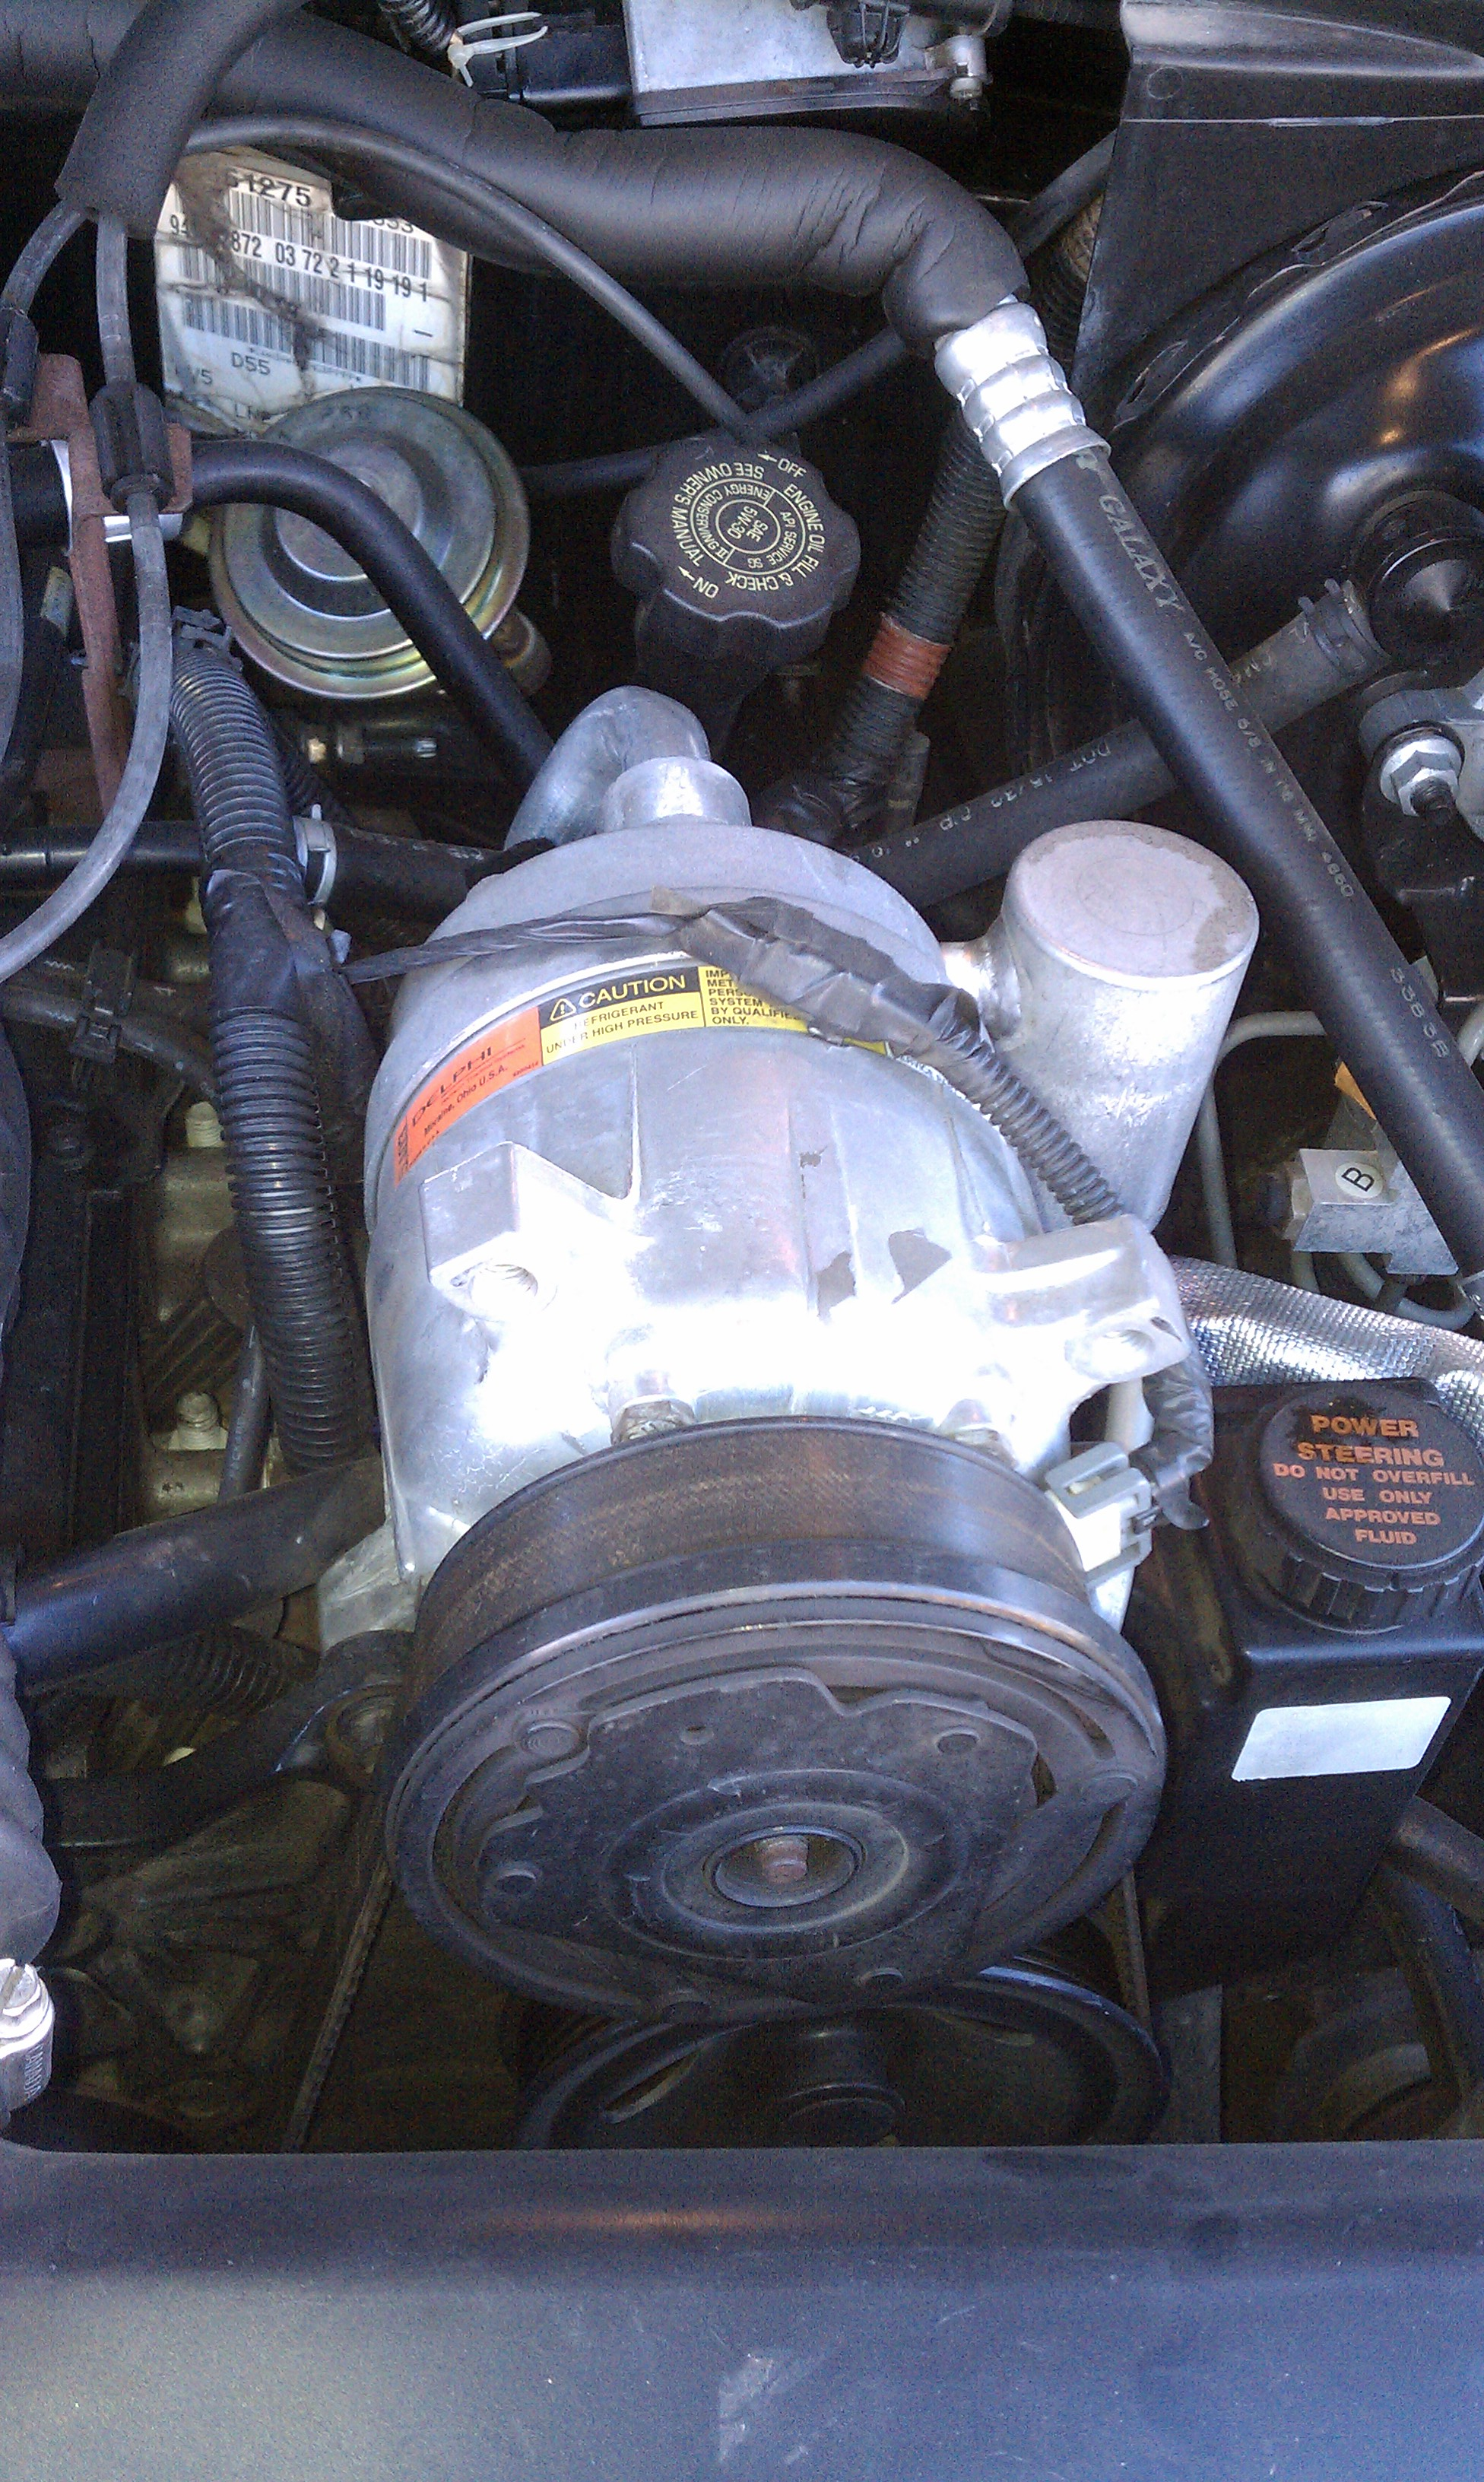 No Cold Air From Ac >> 99 s10 compressor not engaging - Automotive Air Conditioning Information Forum